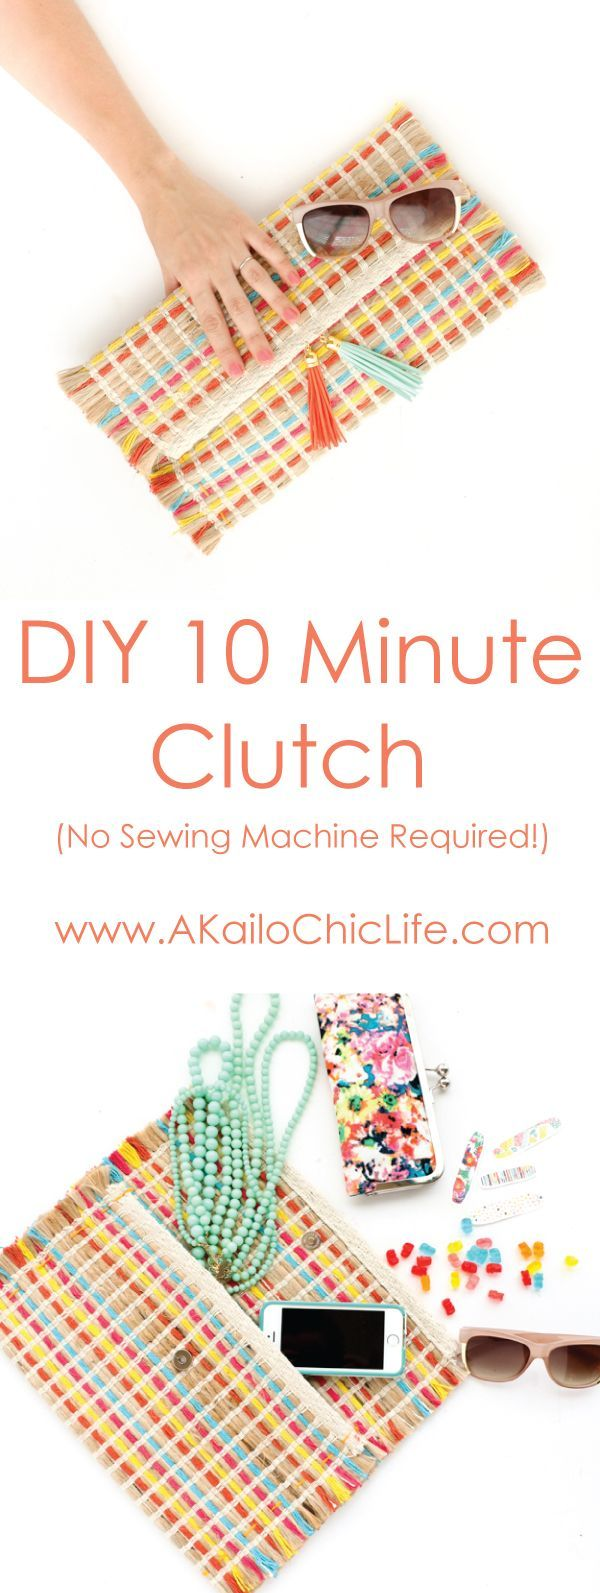 10 minute diy no sew clutch using a placemat - perfect tassel clutch for summer - diy project - craft - sewing craft - beginner craft - sewing a bag - sewing a purse - sewing project